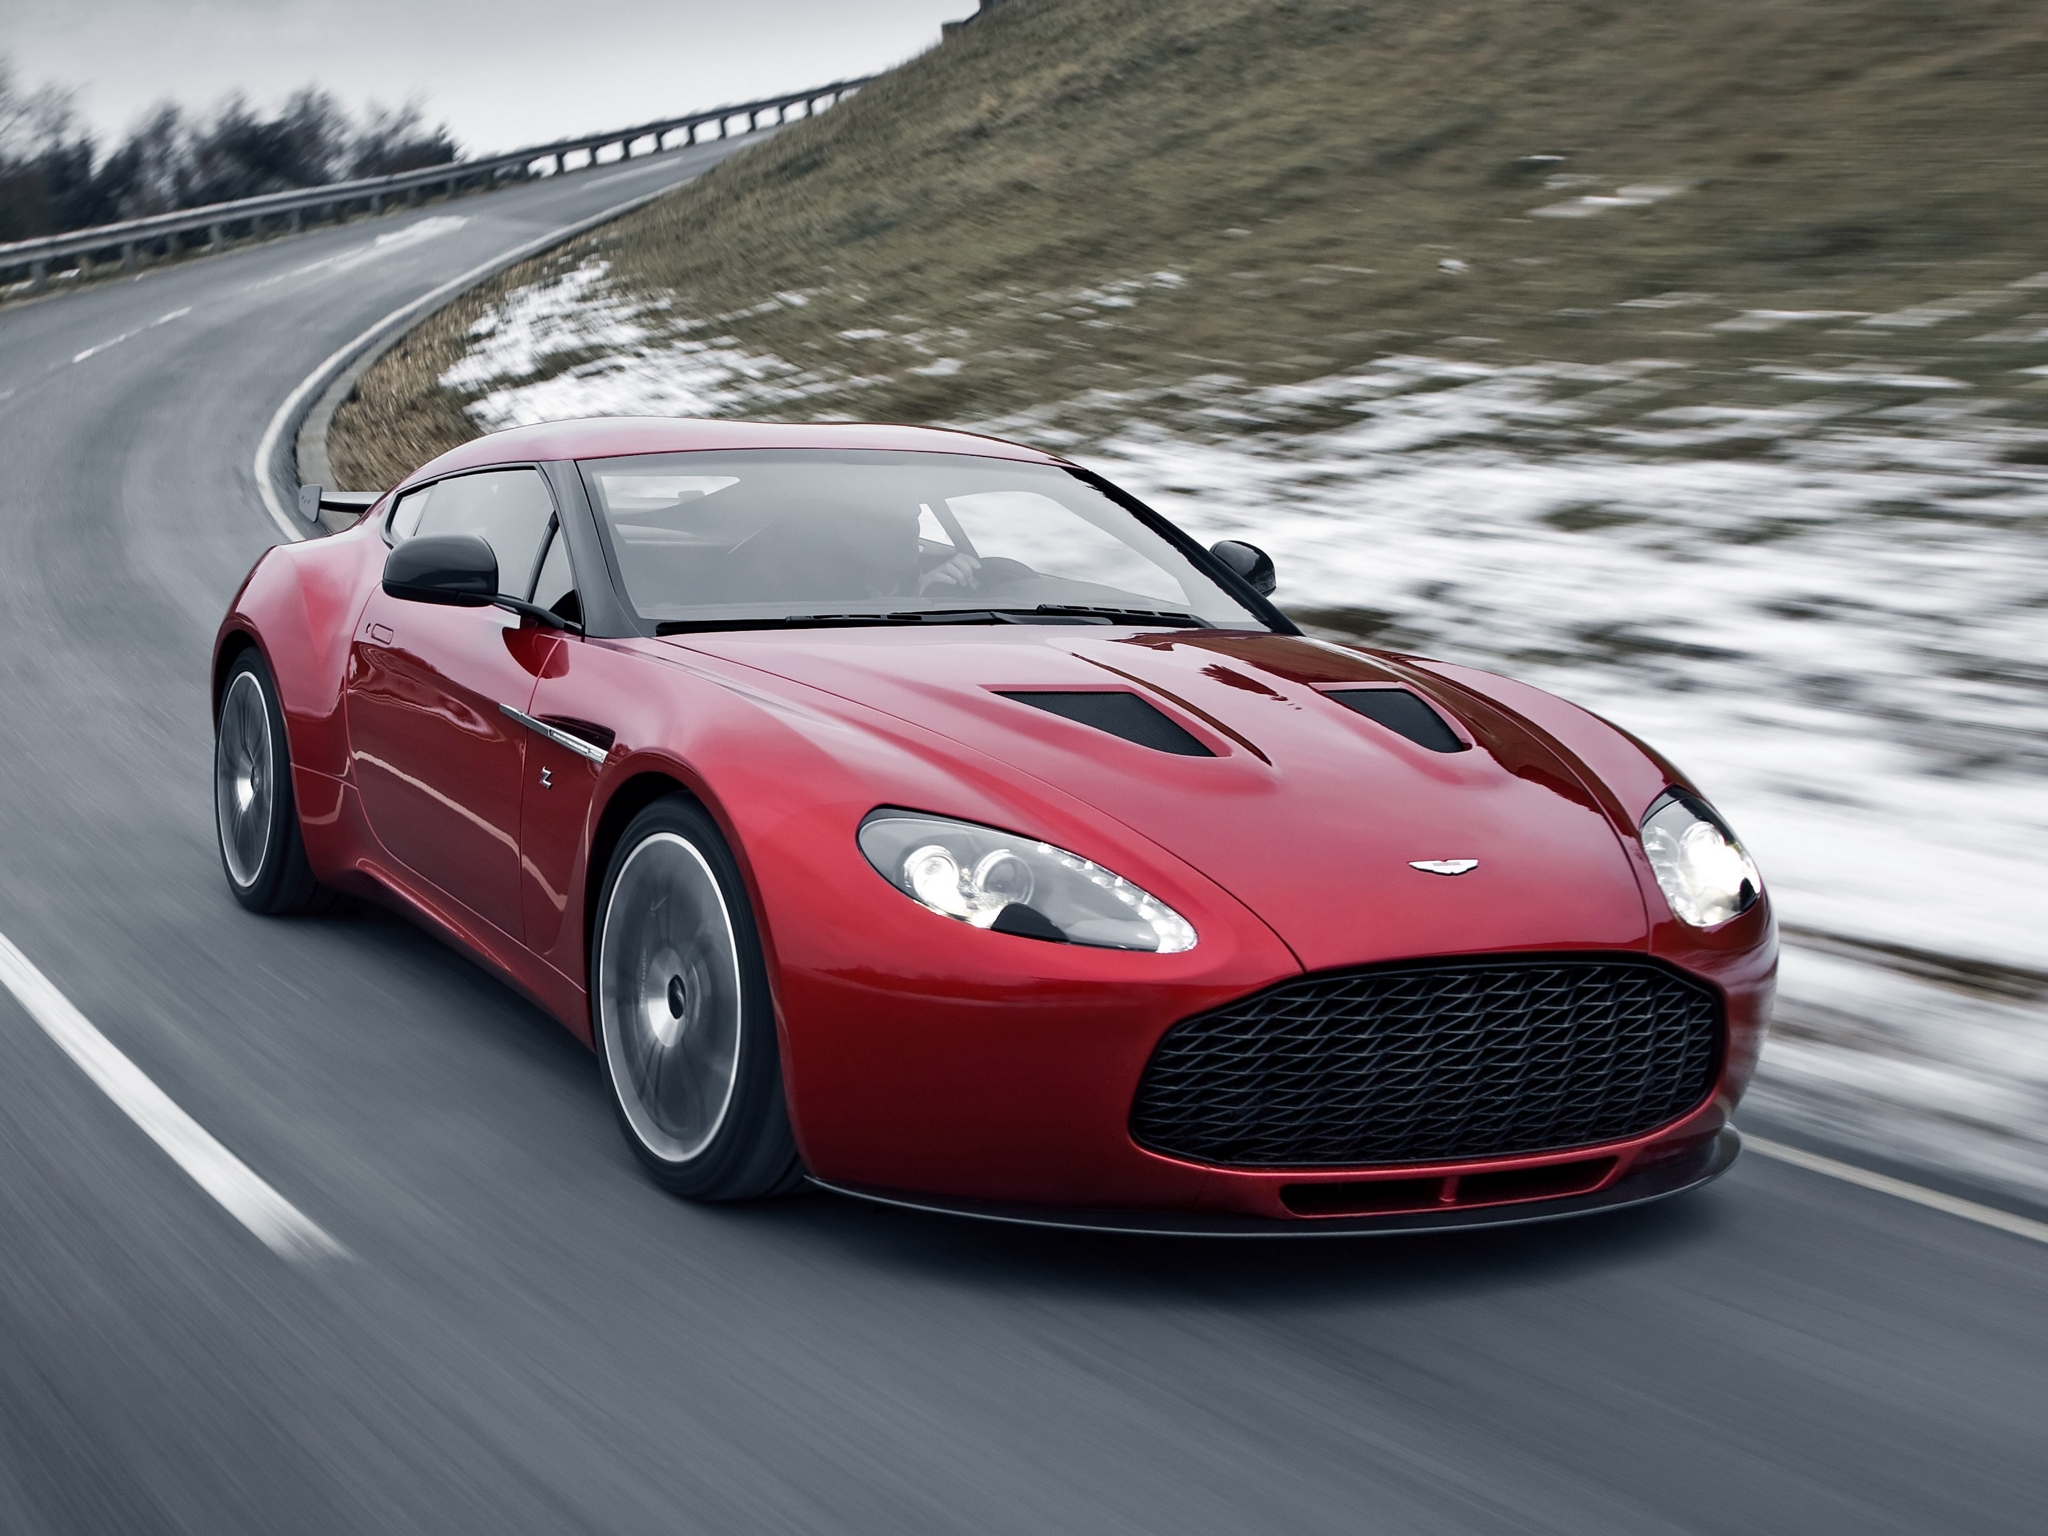 Aston Martin V12 Zagato Background For Free